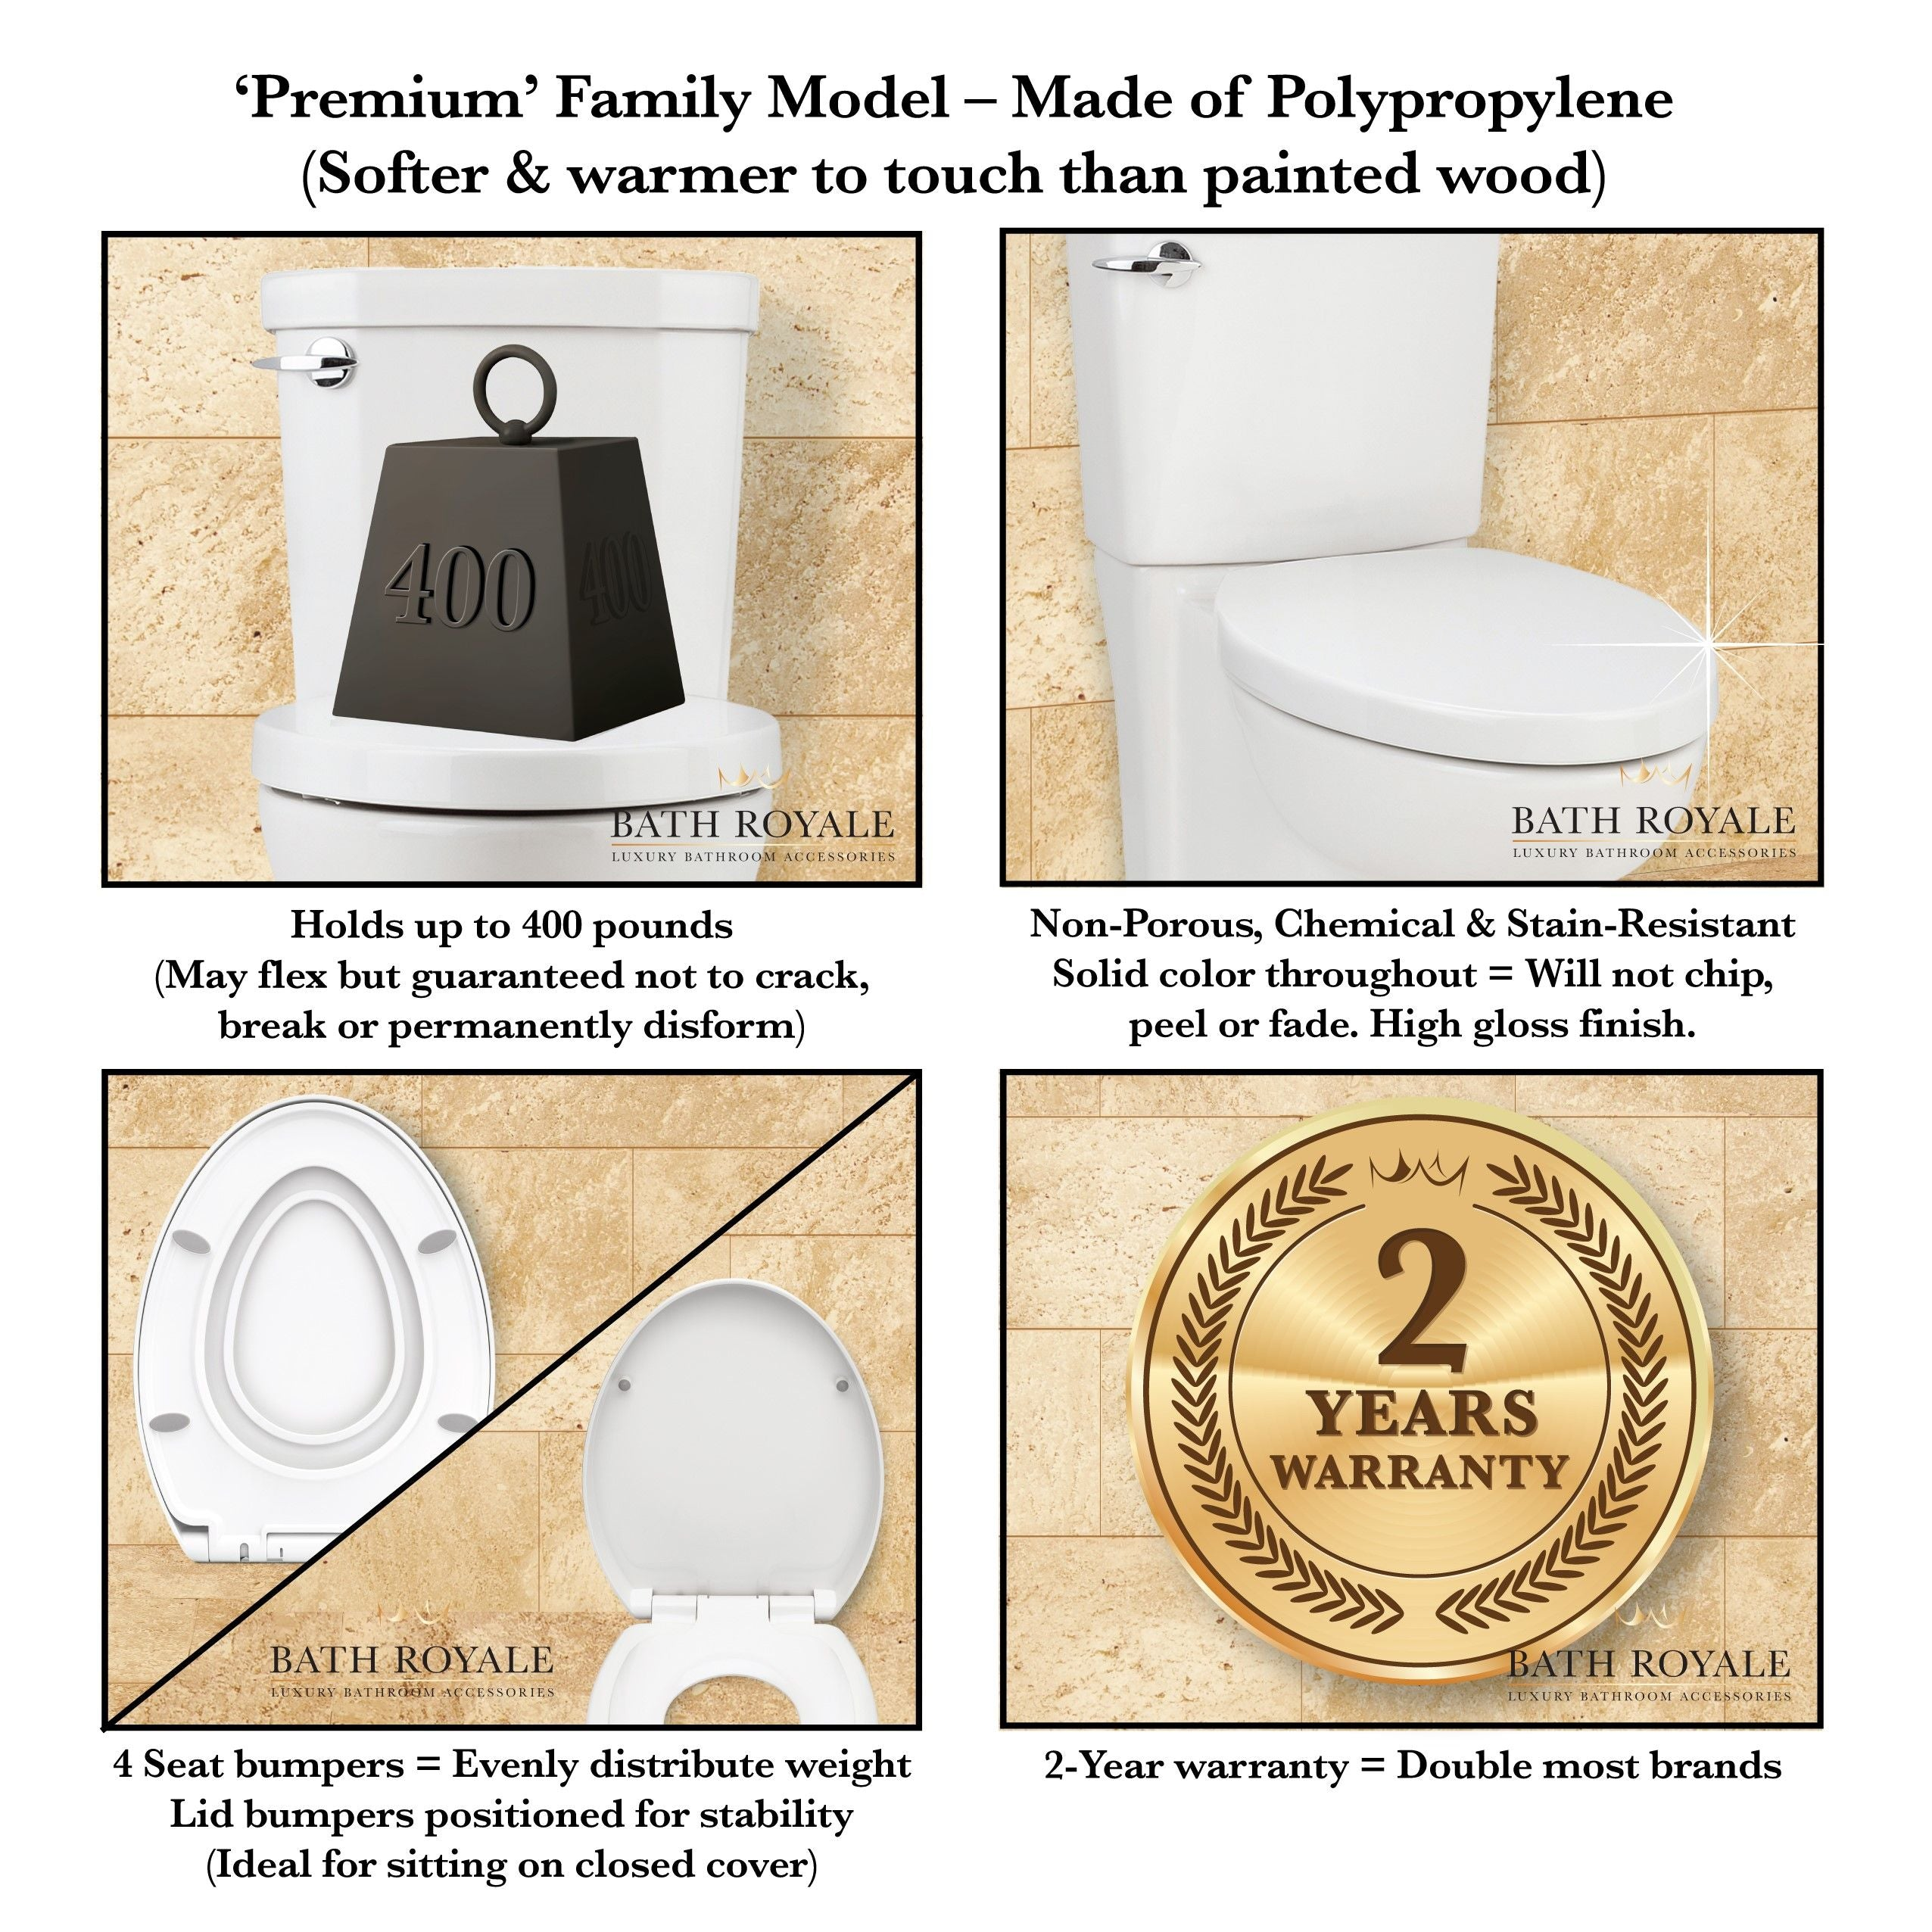 Bath Royale Premium Elongated Family Toilet Seat highlights